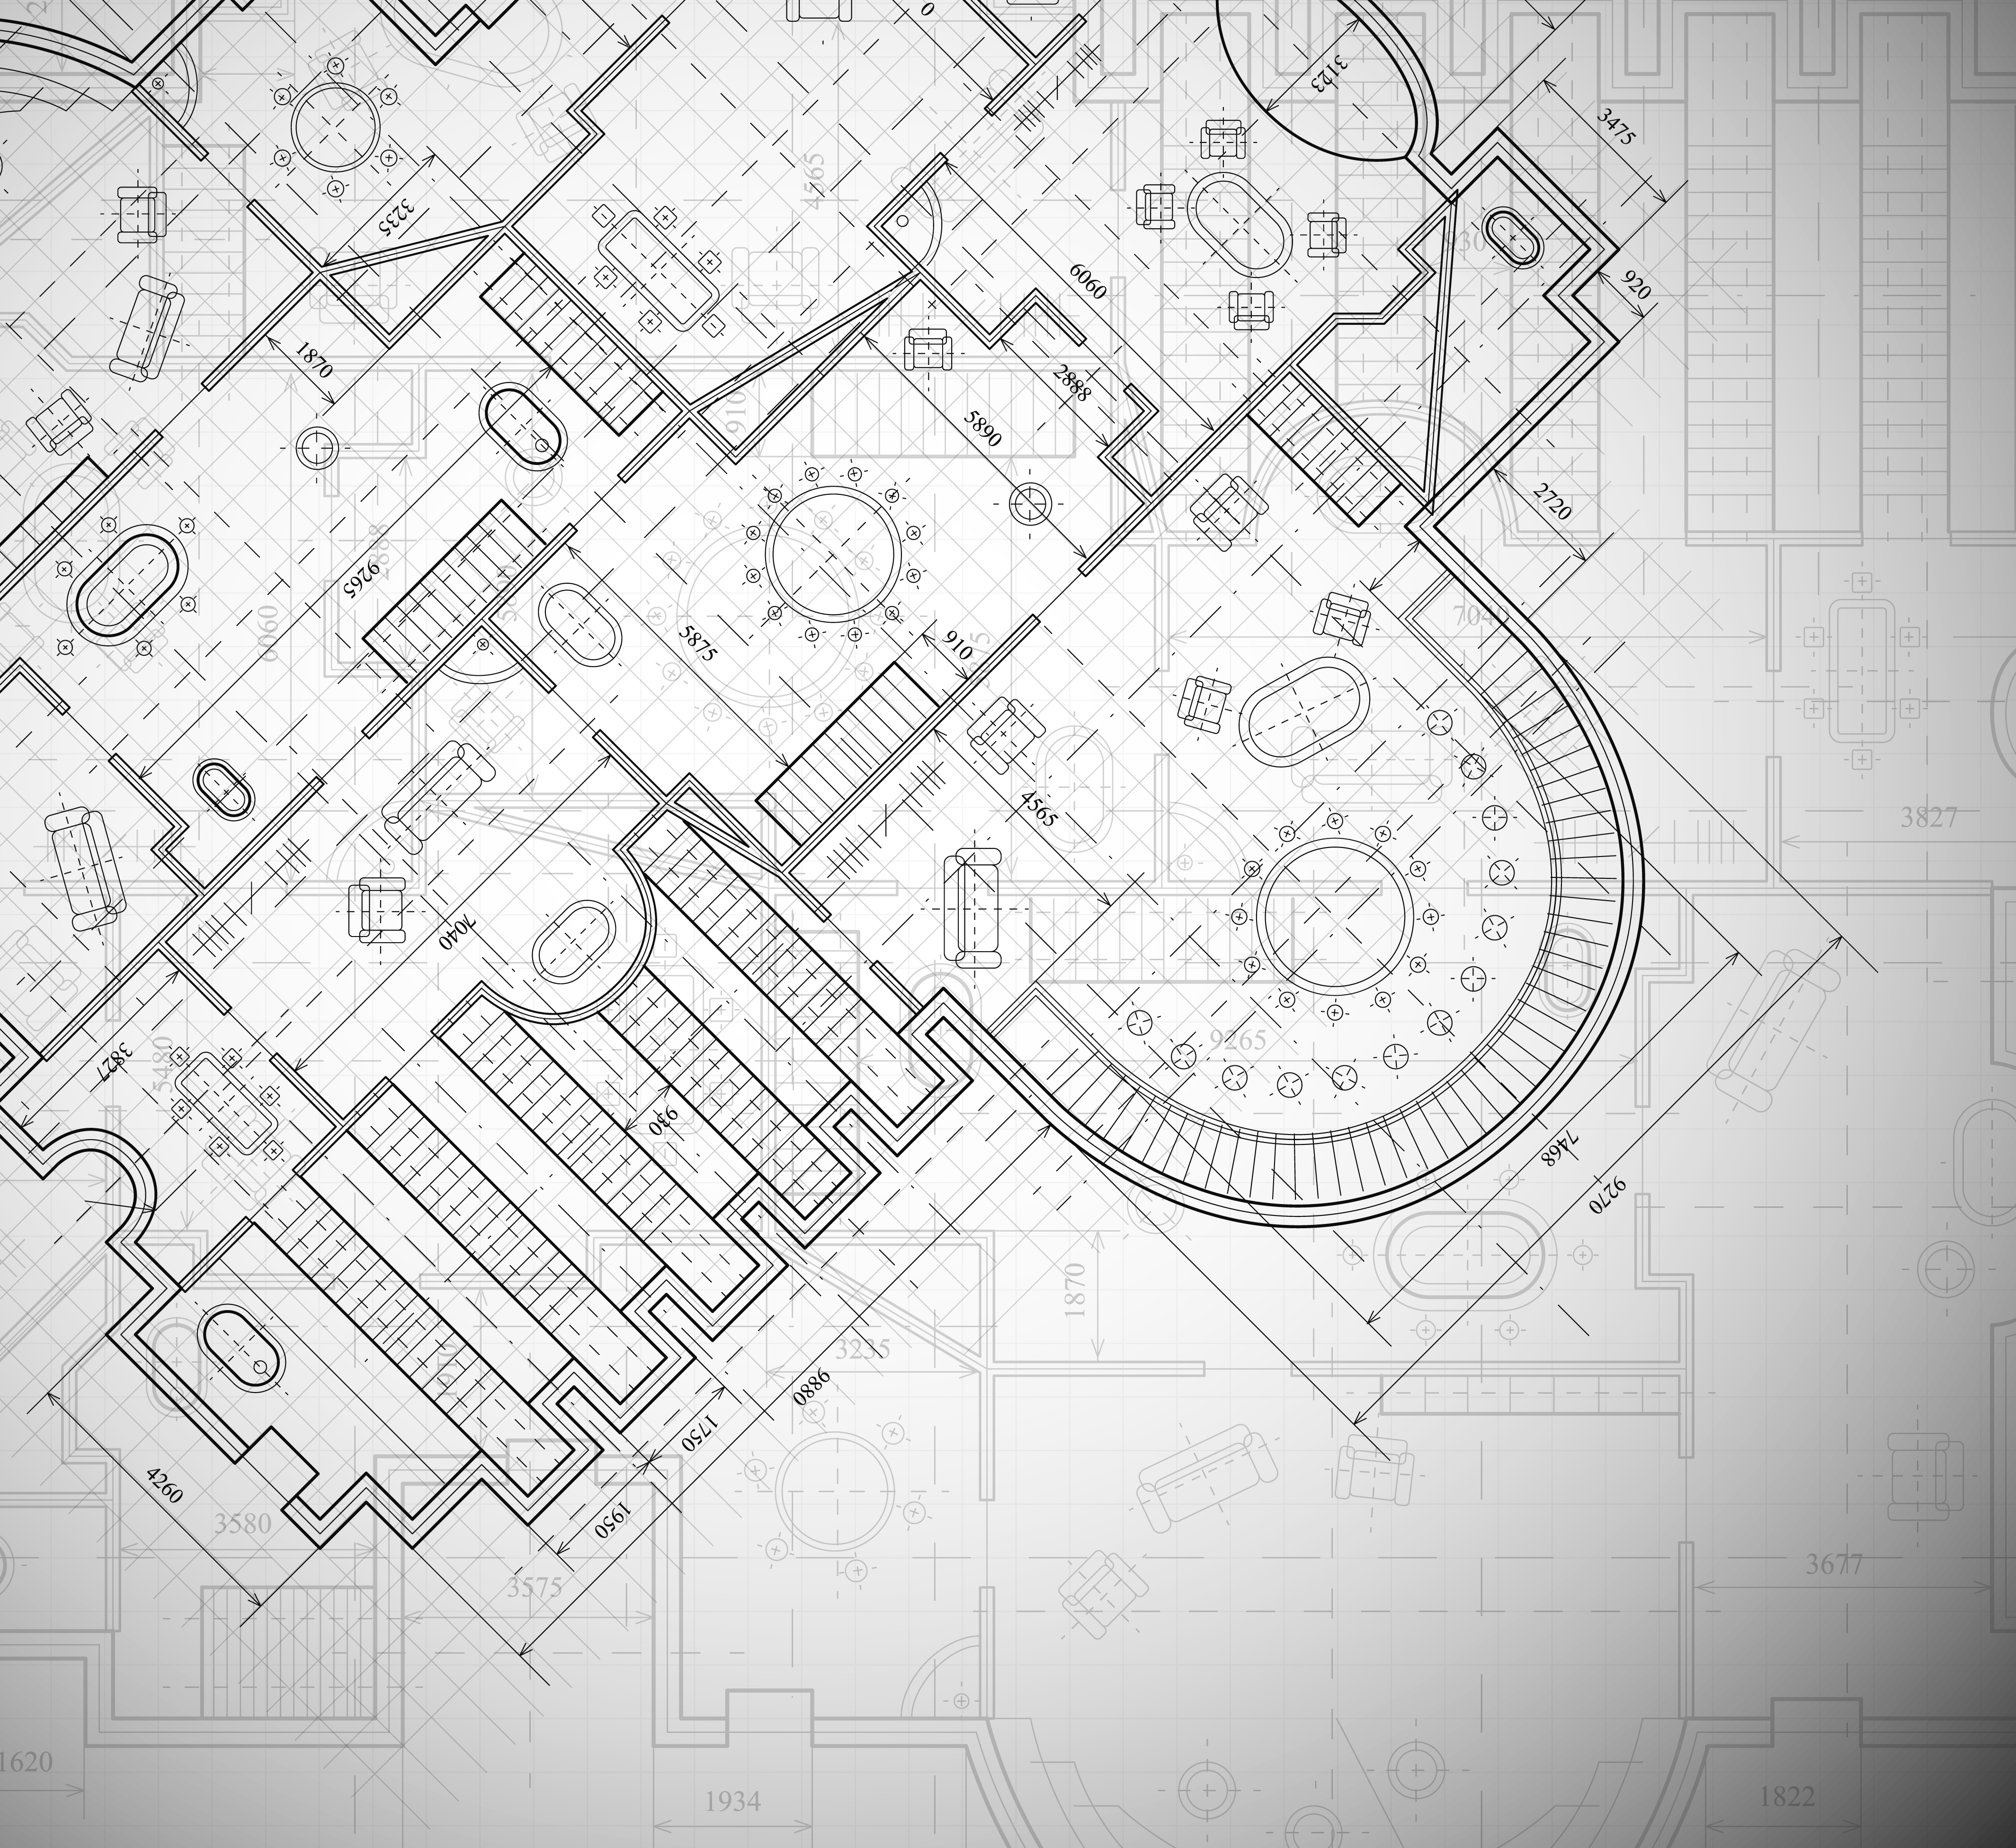 Shutterstock image of architectural plan.